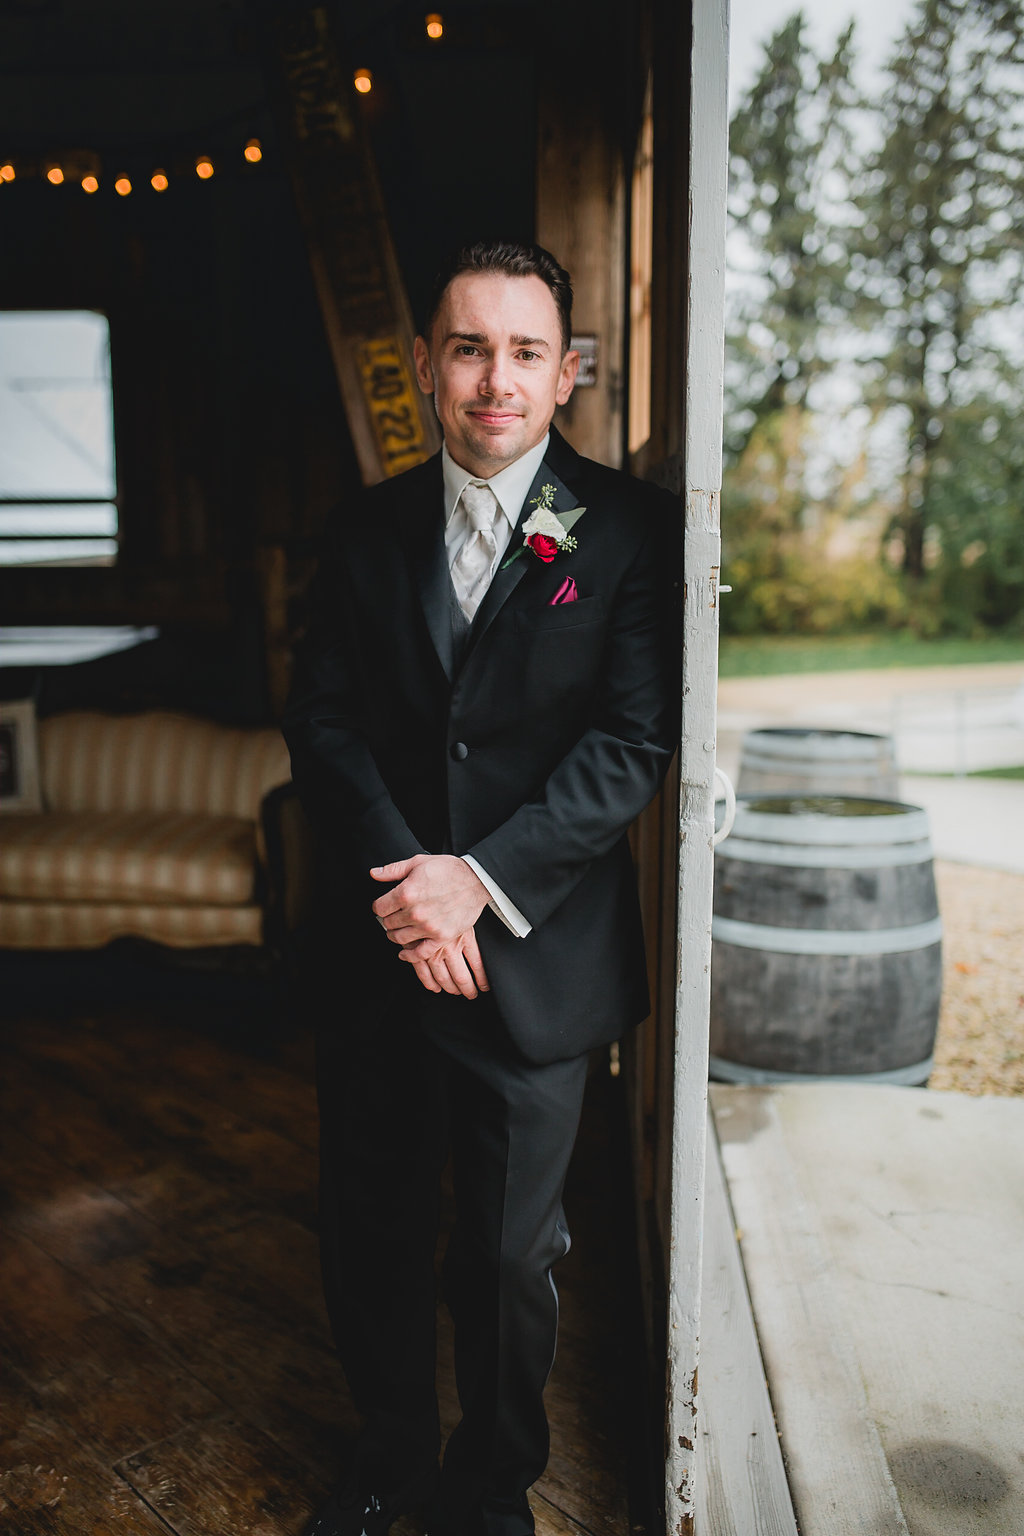 groom waiting by the door | Leslee & Billy | Legacy Hill Farm Wedding | Aqua Fox Photography | A Vintage Touch Wedding Planning | Sixpence Events & Planning day of coordinating | black suit with white on white striped tie, grey vest, and magenta pocket square